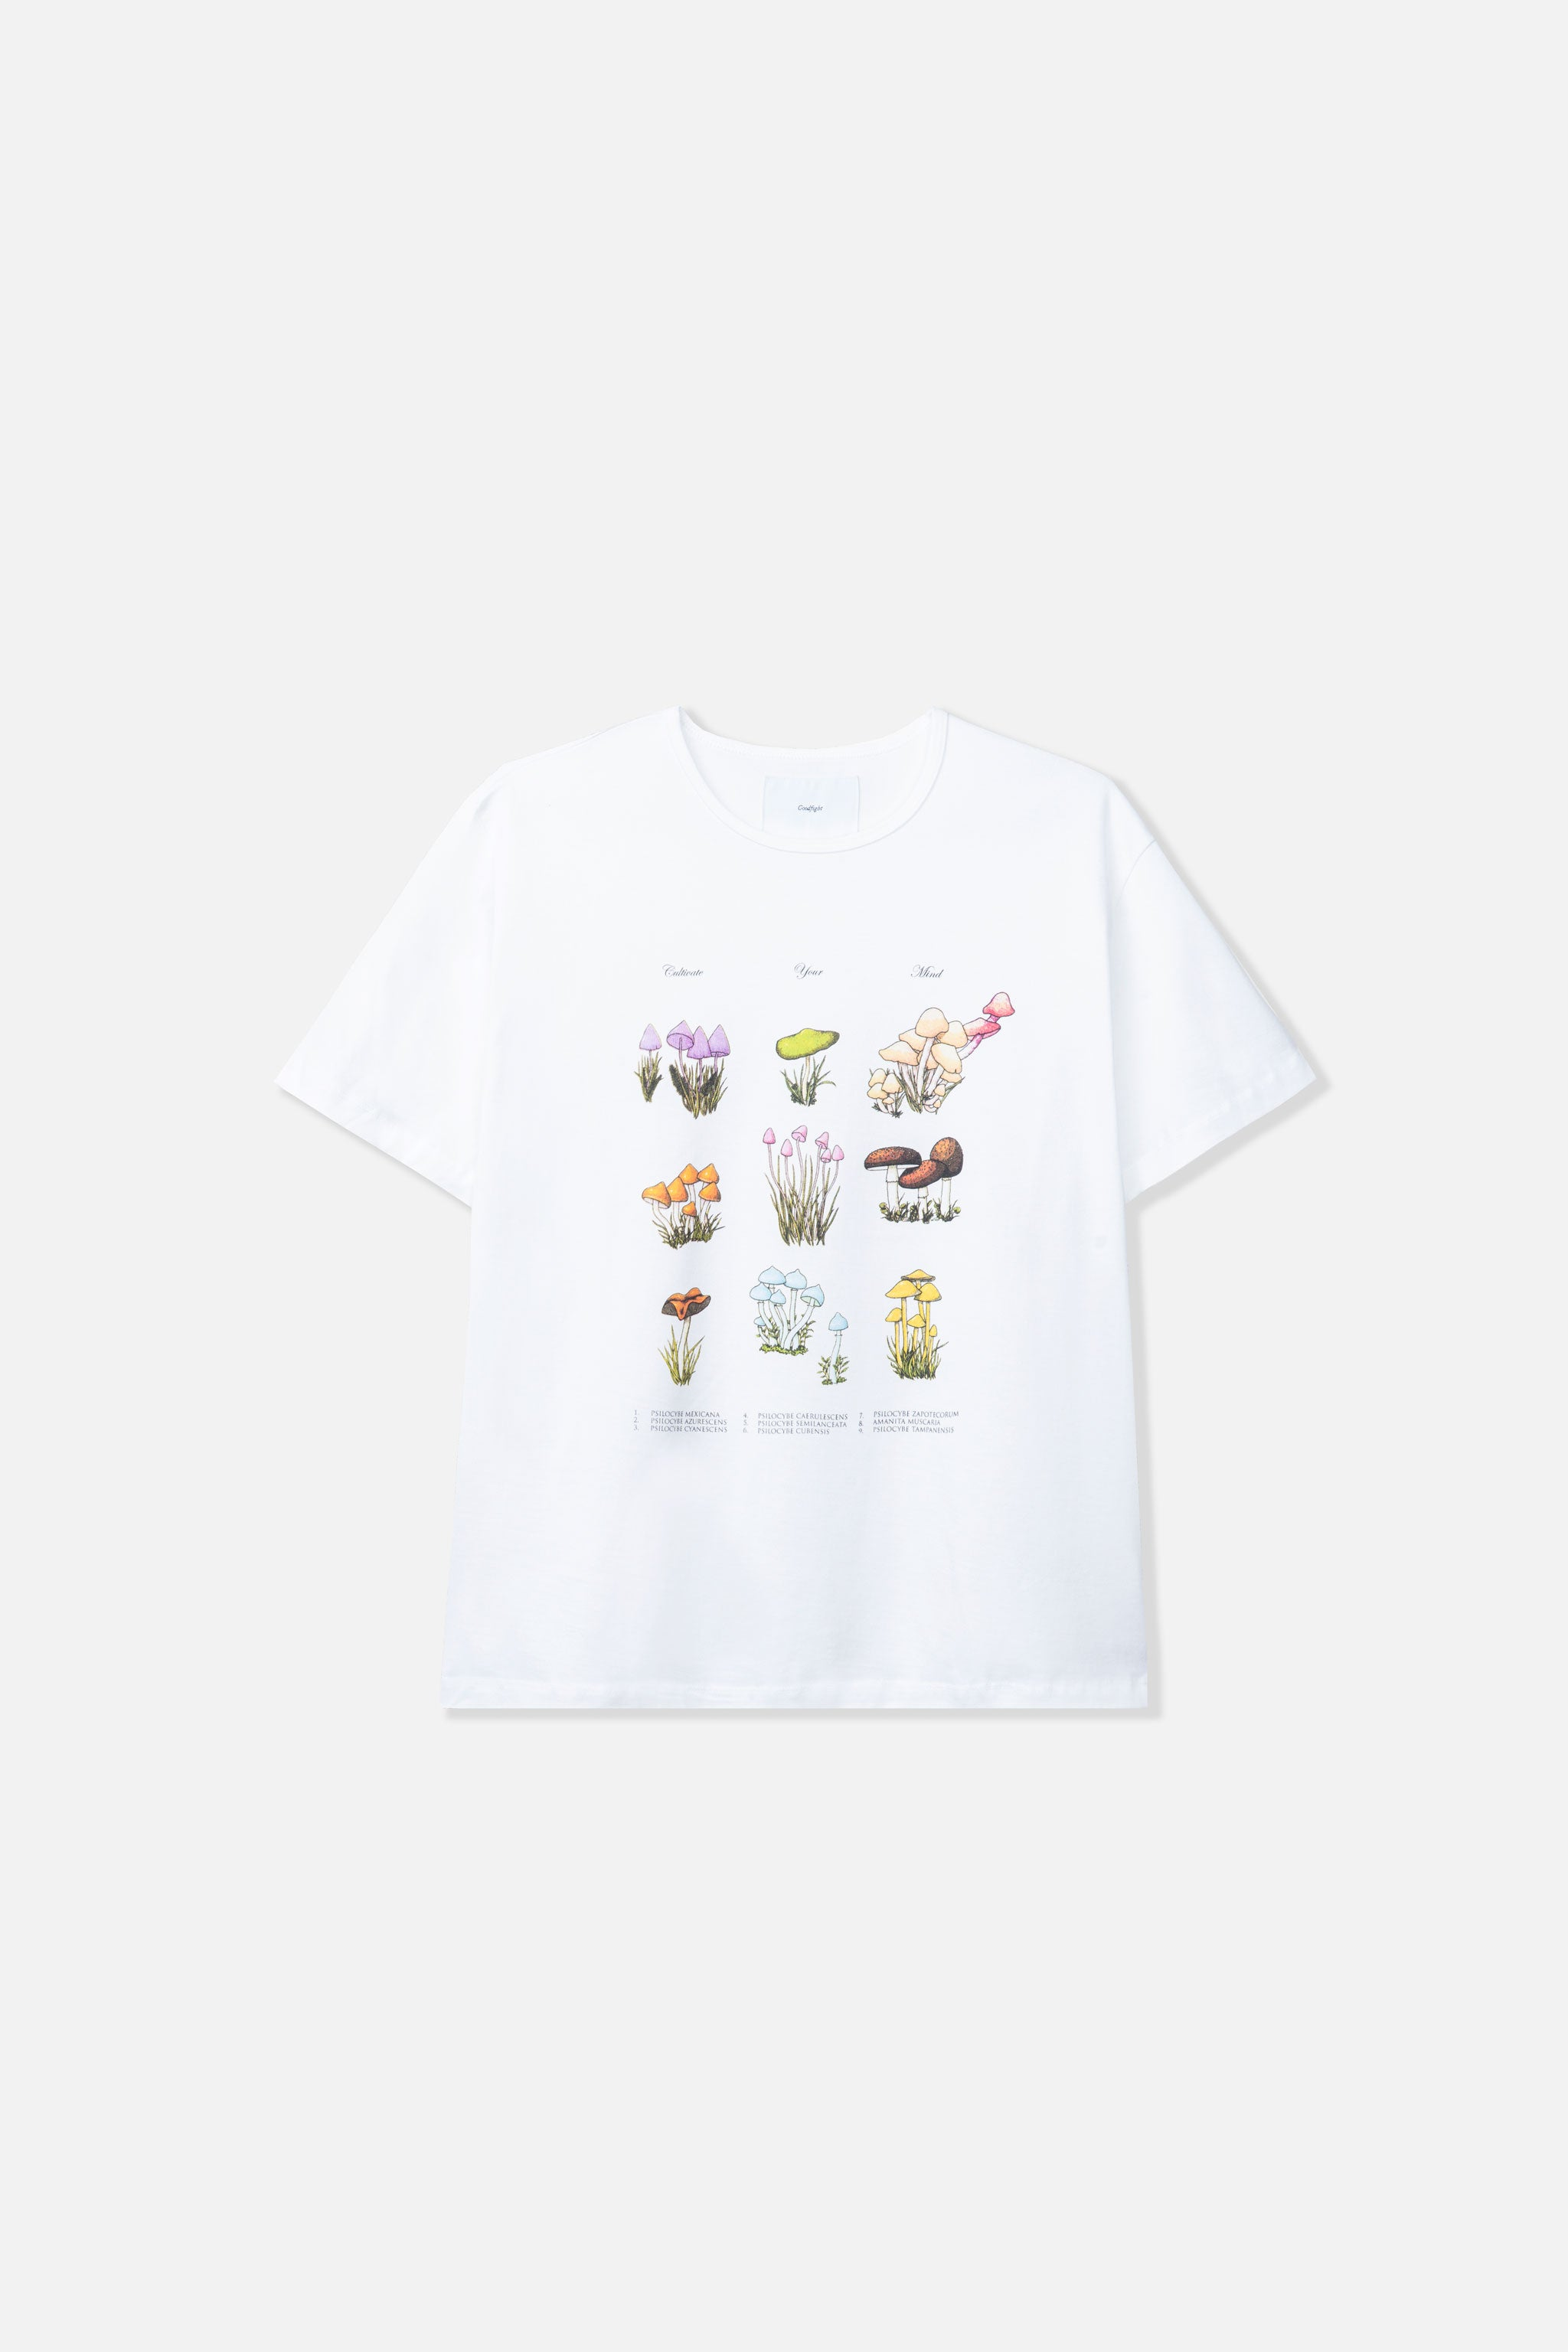 Goodfight Harvest SS Tee